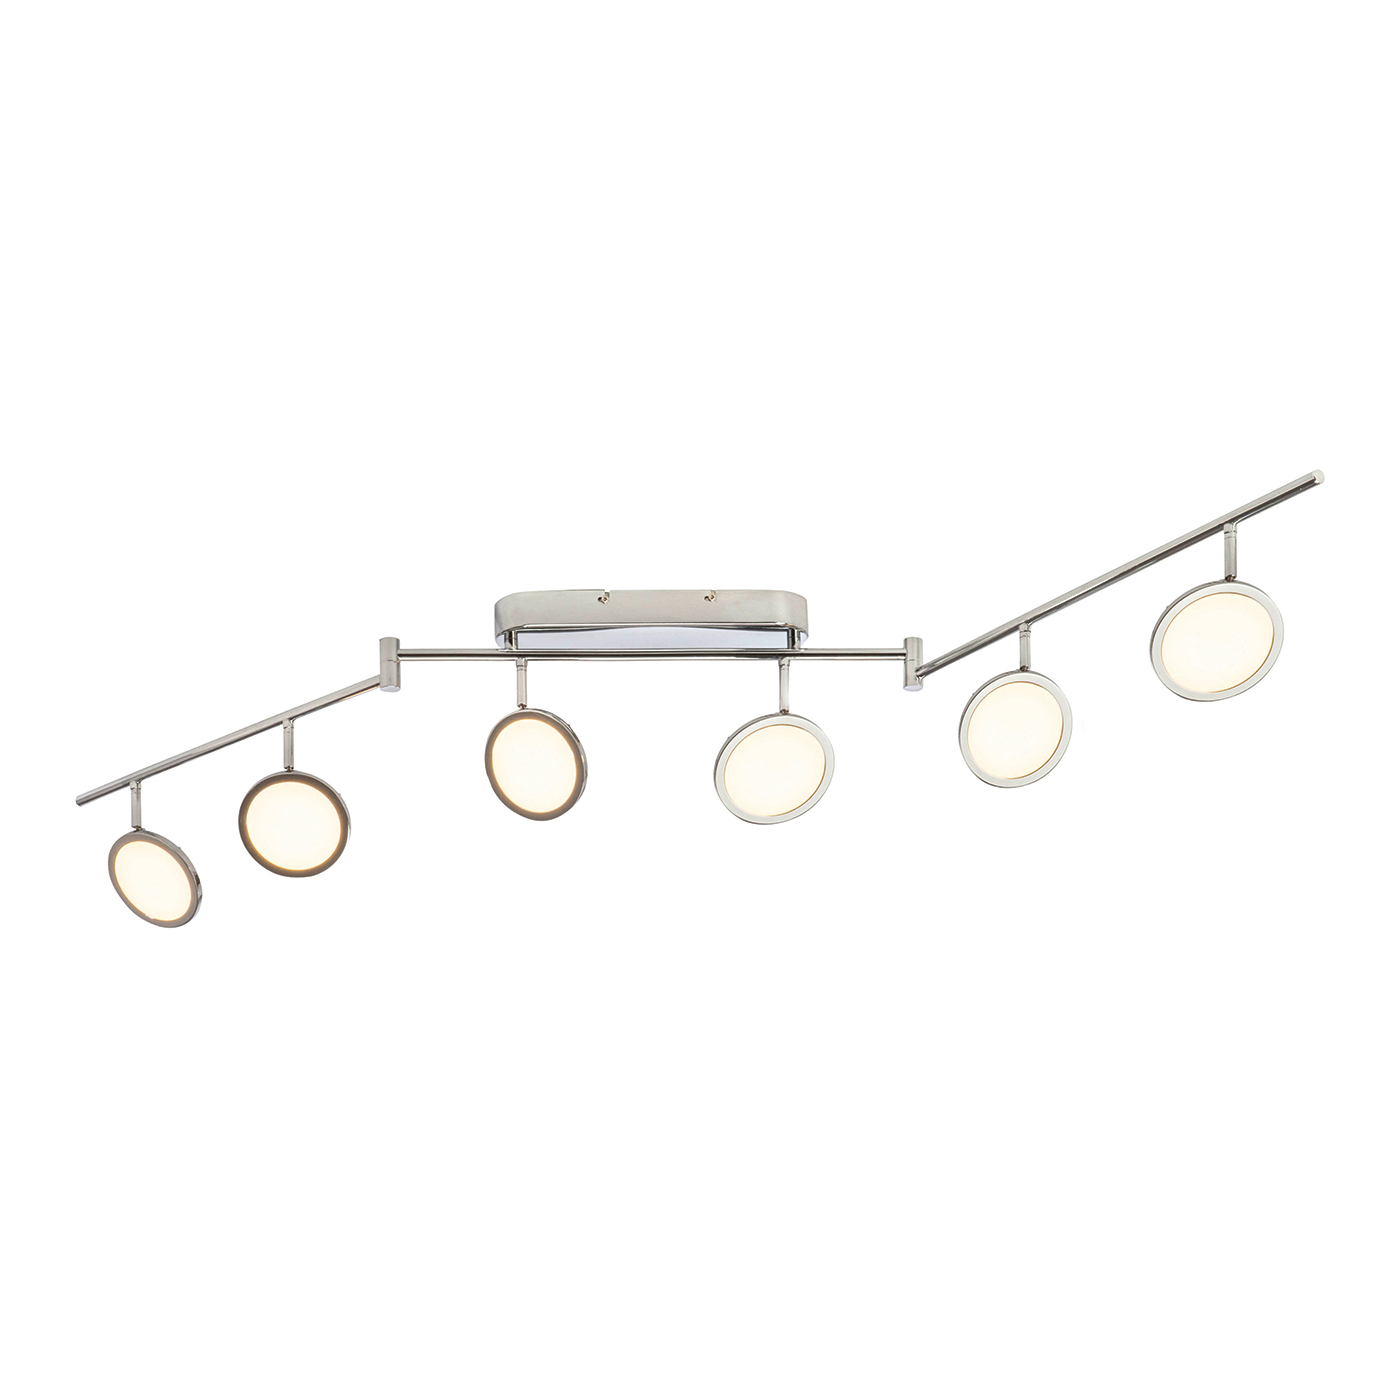 Endon Pluto ceiling spotlight folding bar 6x 5W Chrome effect plate opal plastic Thumbnail 1